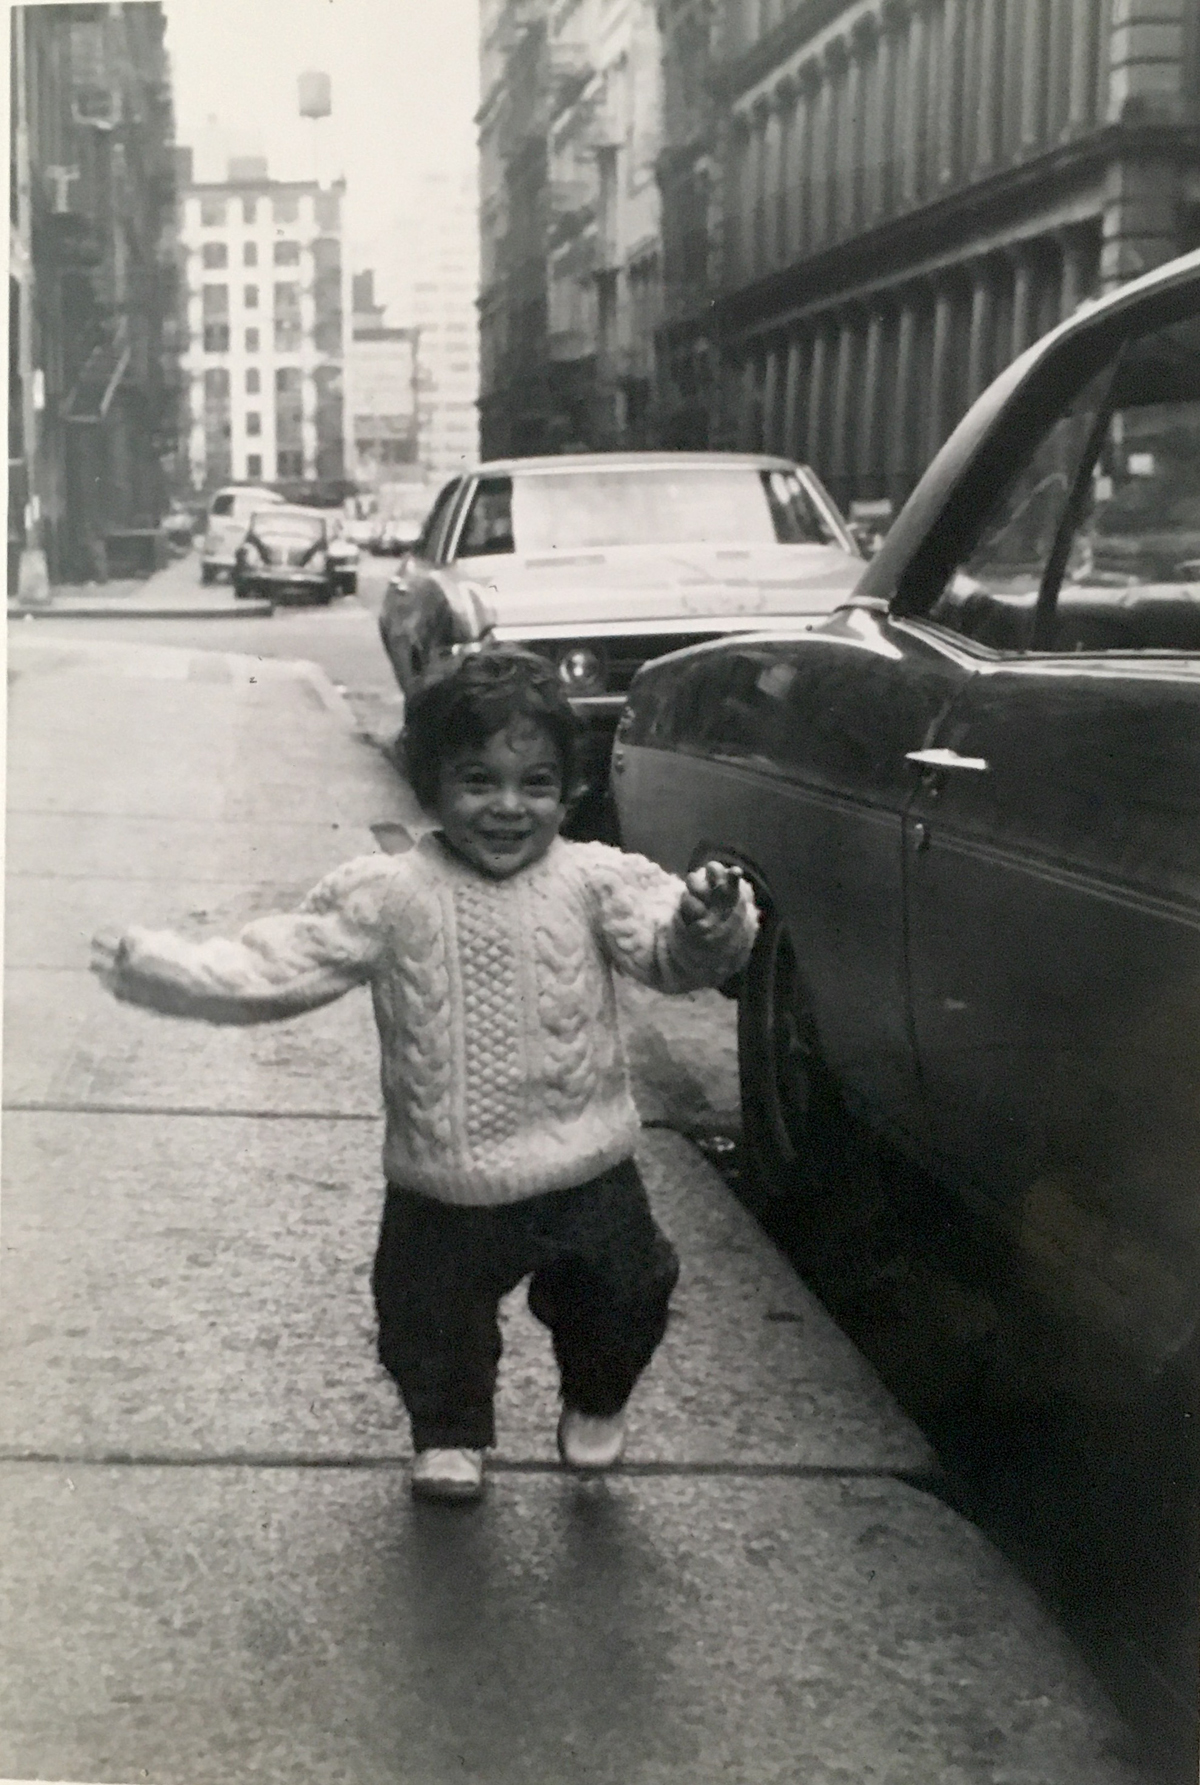 Me on Greene St., probably 1973 or 1974